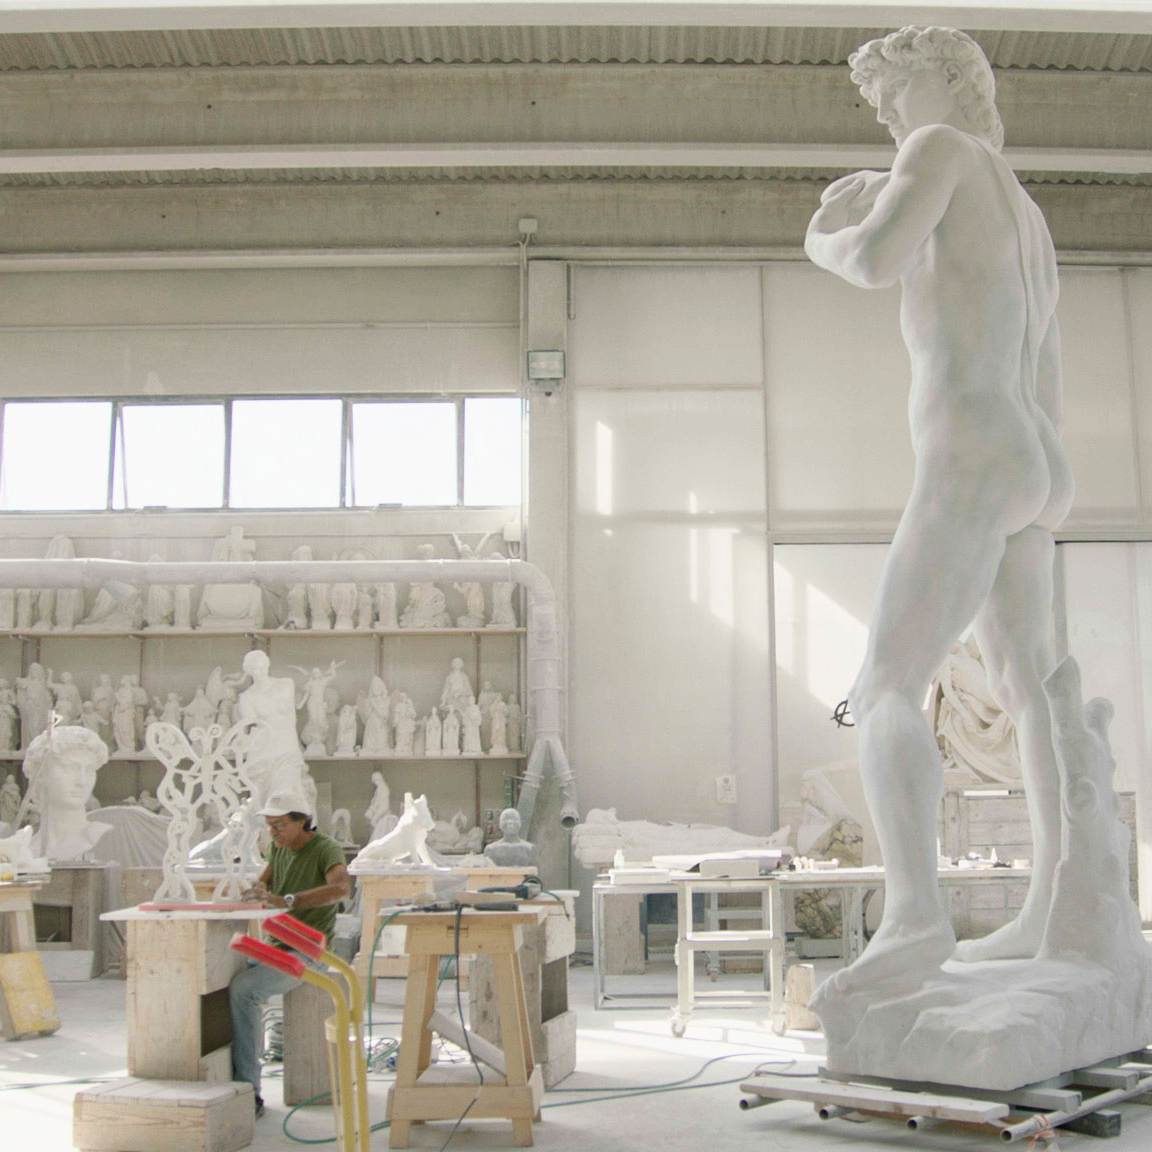 A sculptor carves David statues from Carrara marble in Italy. A detail from a film still from Anthropocene: The Human Epoch